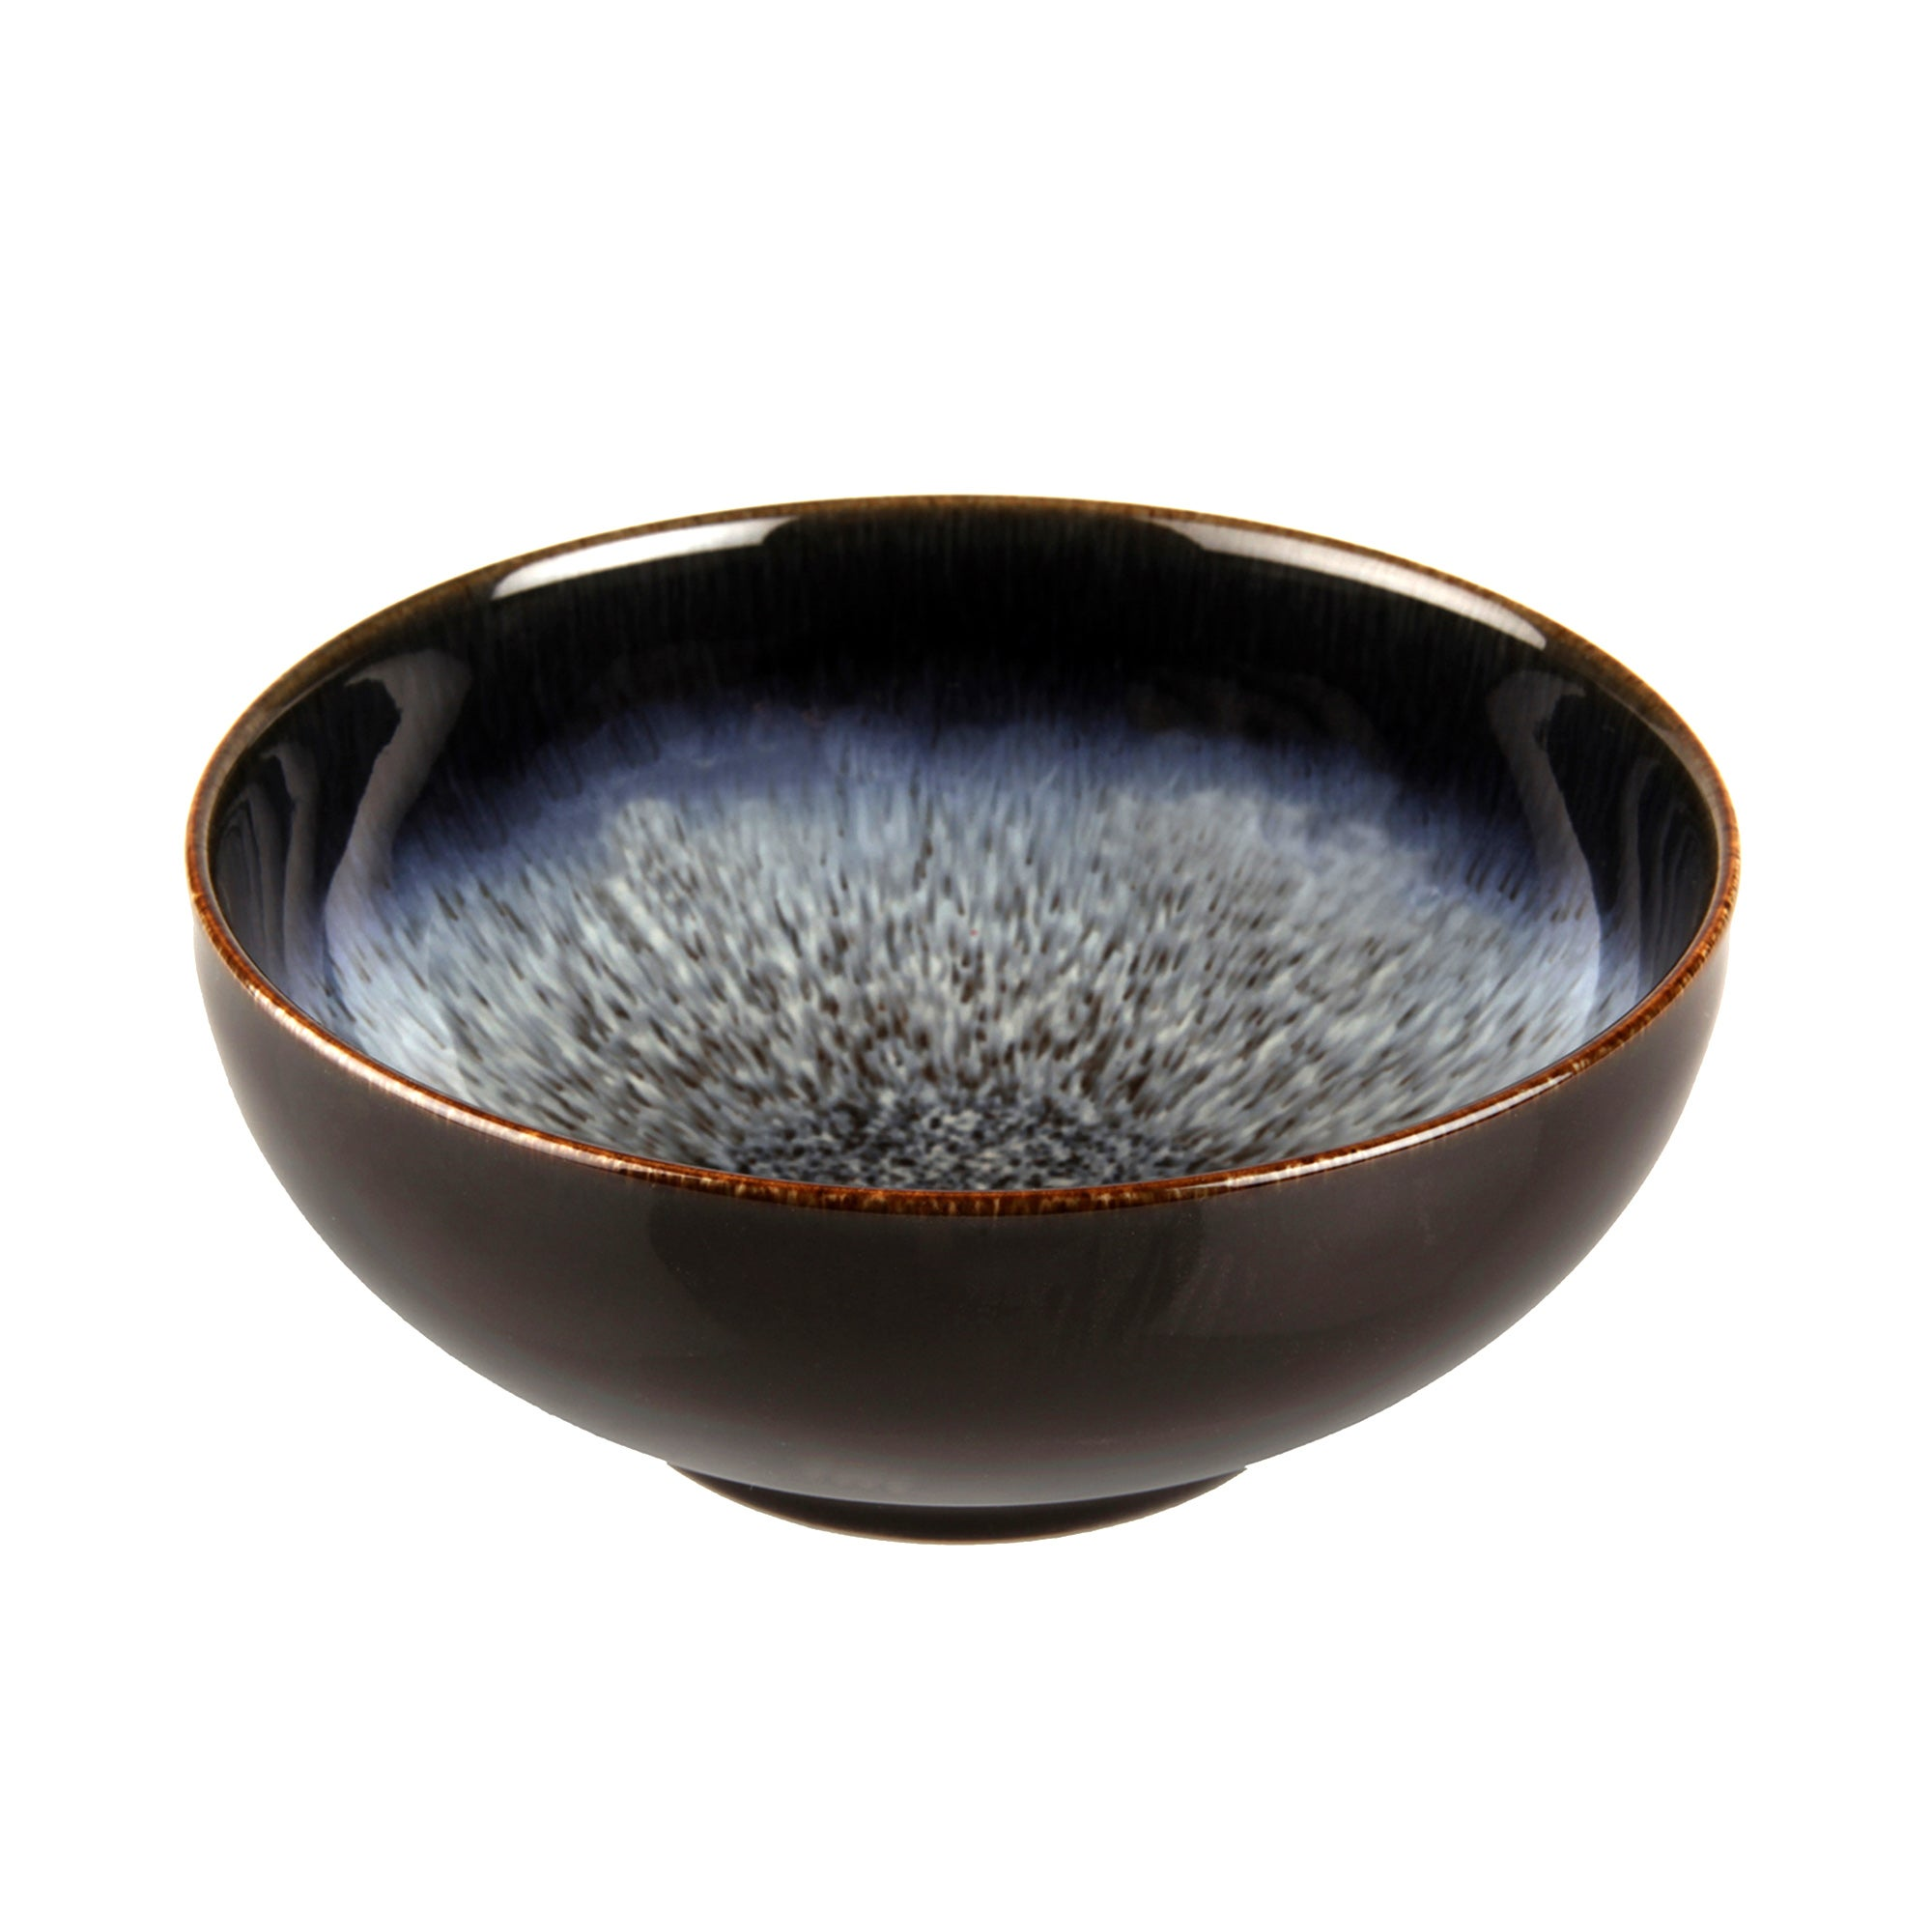 Image of Denby Halo Soup Bowl Black